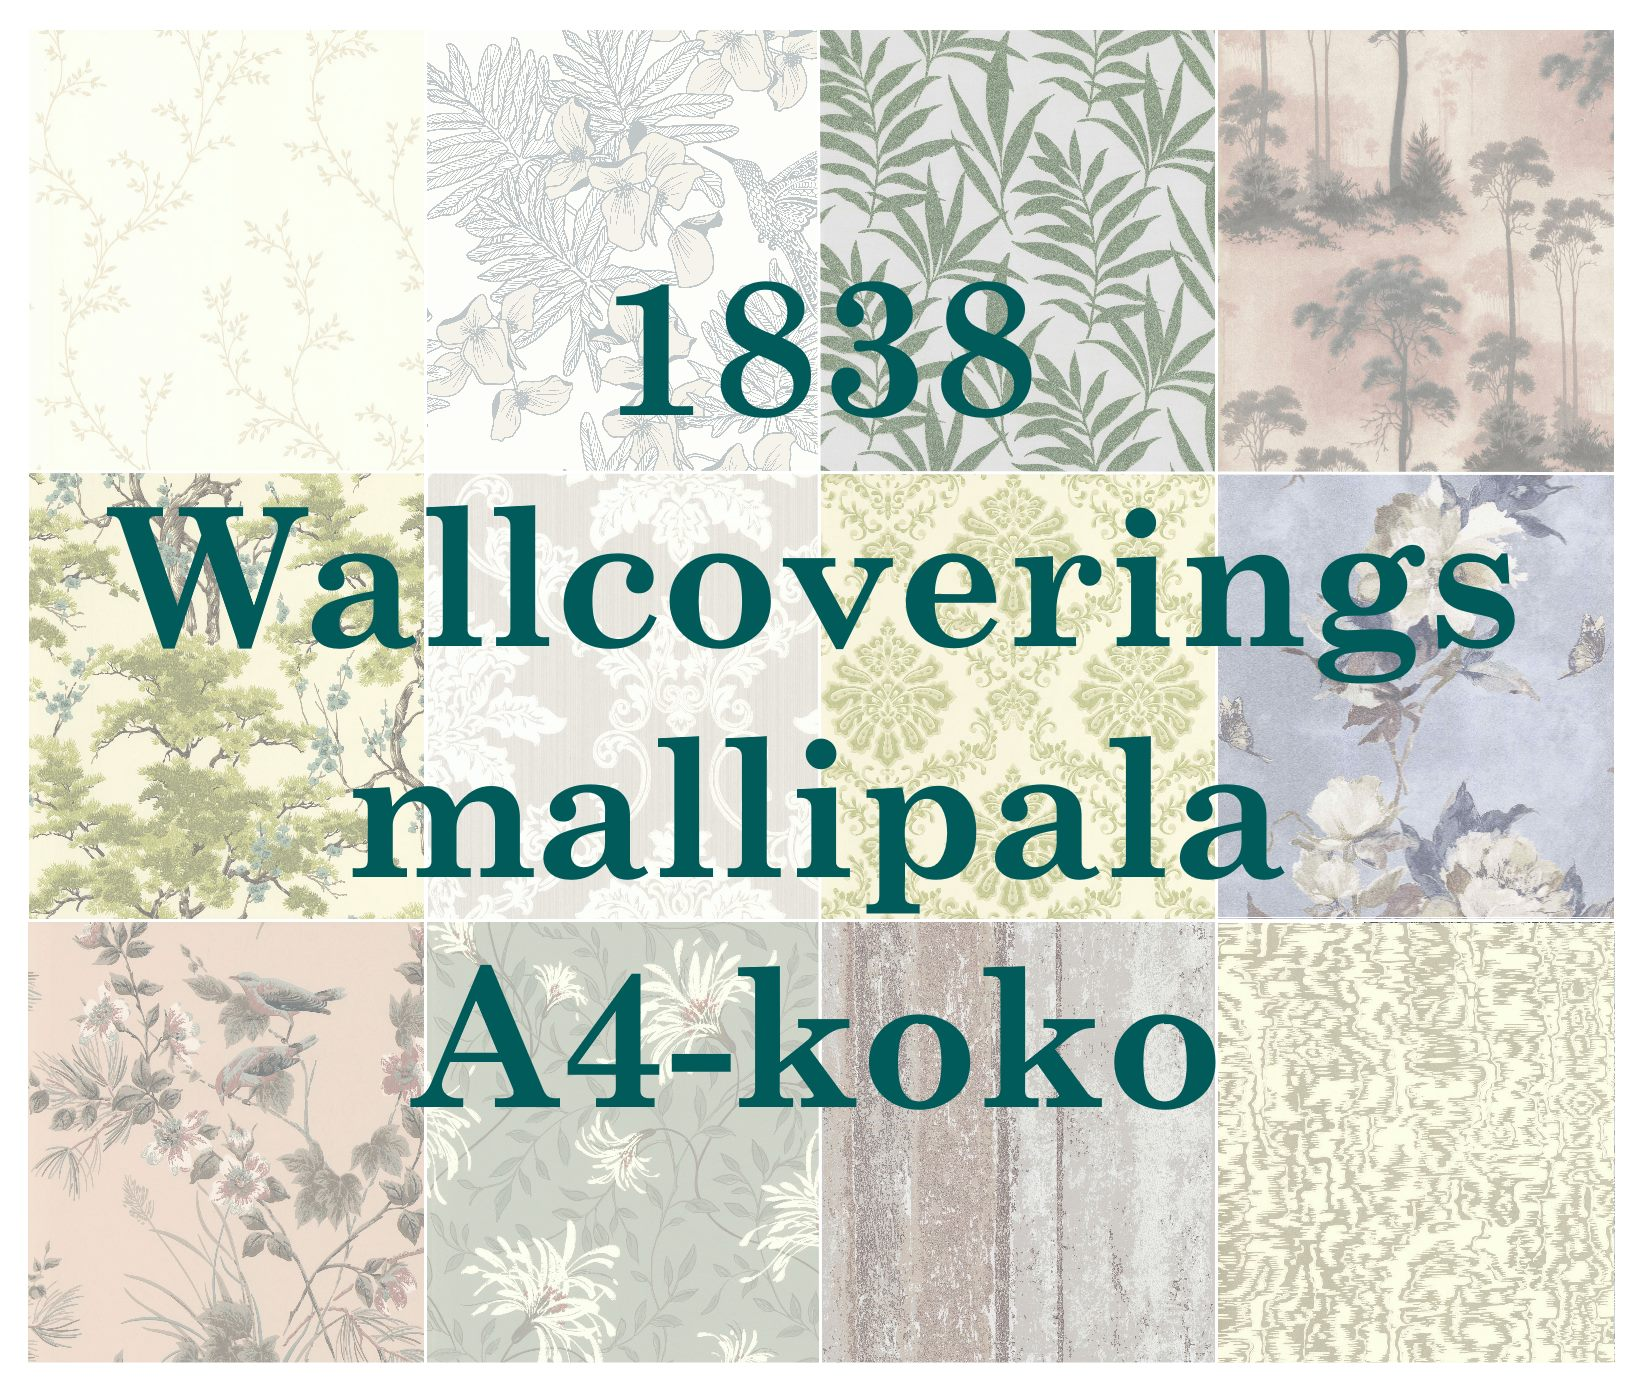 1838 Wallcovers -tapetin mallipala koko A4